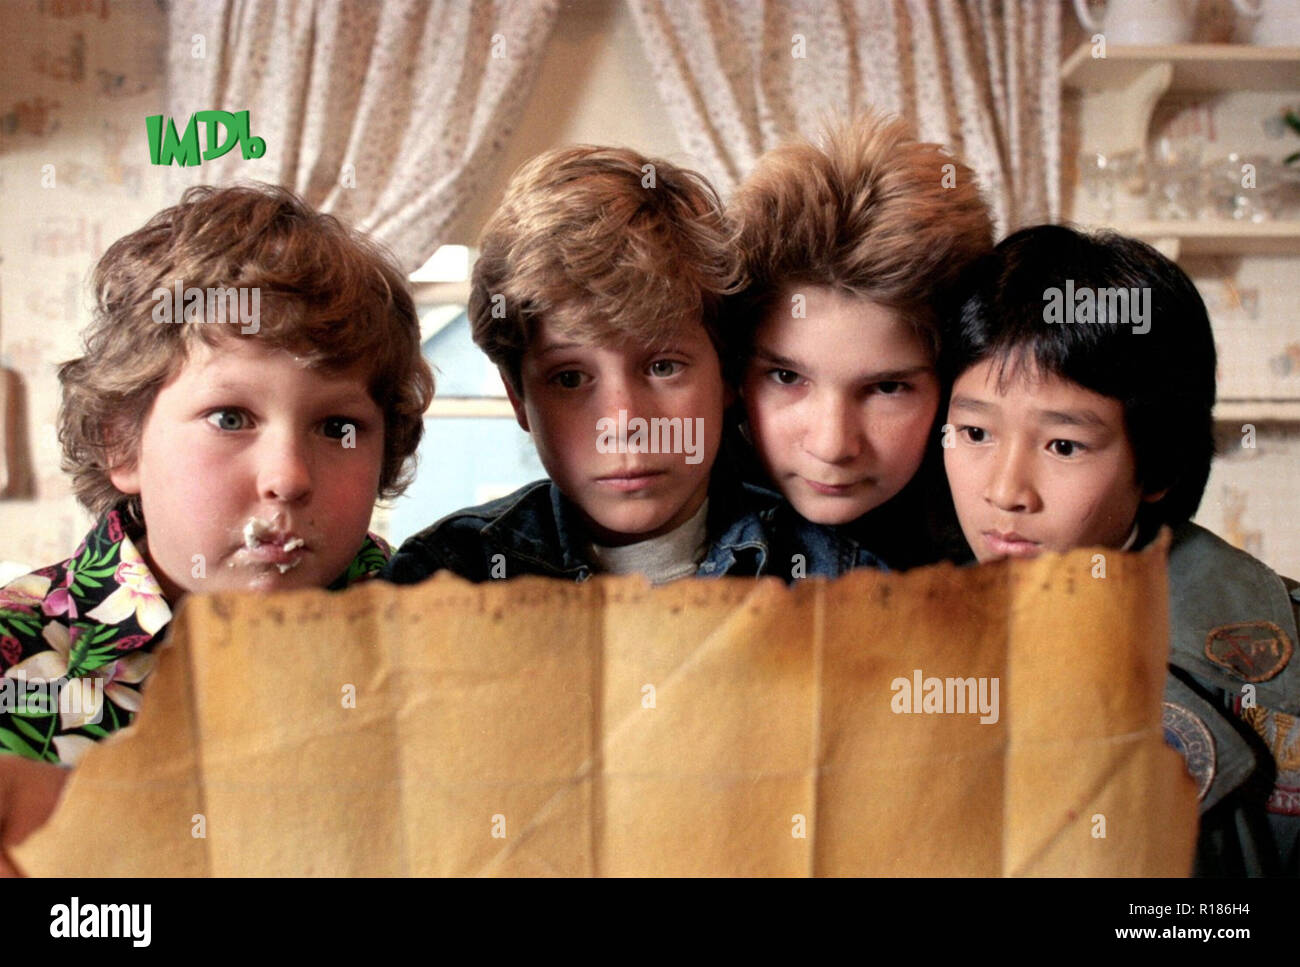 THE GOONIES 1985 Warner Bros film - Stock Image